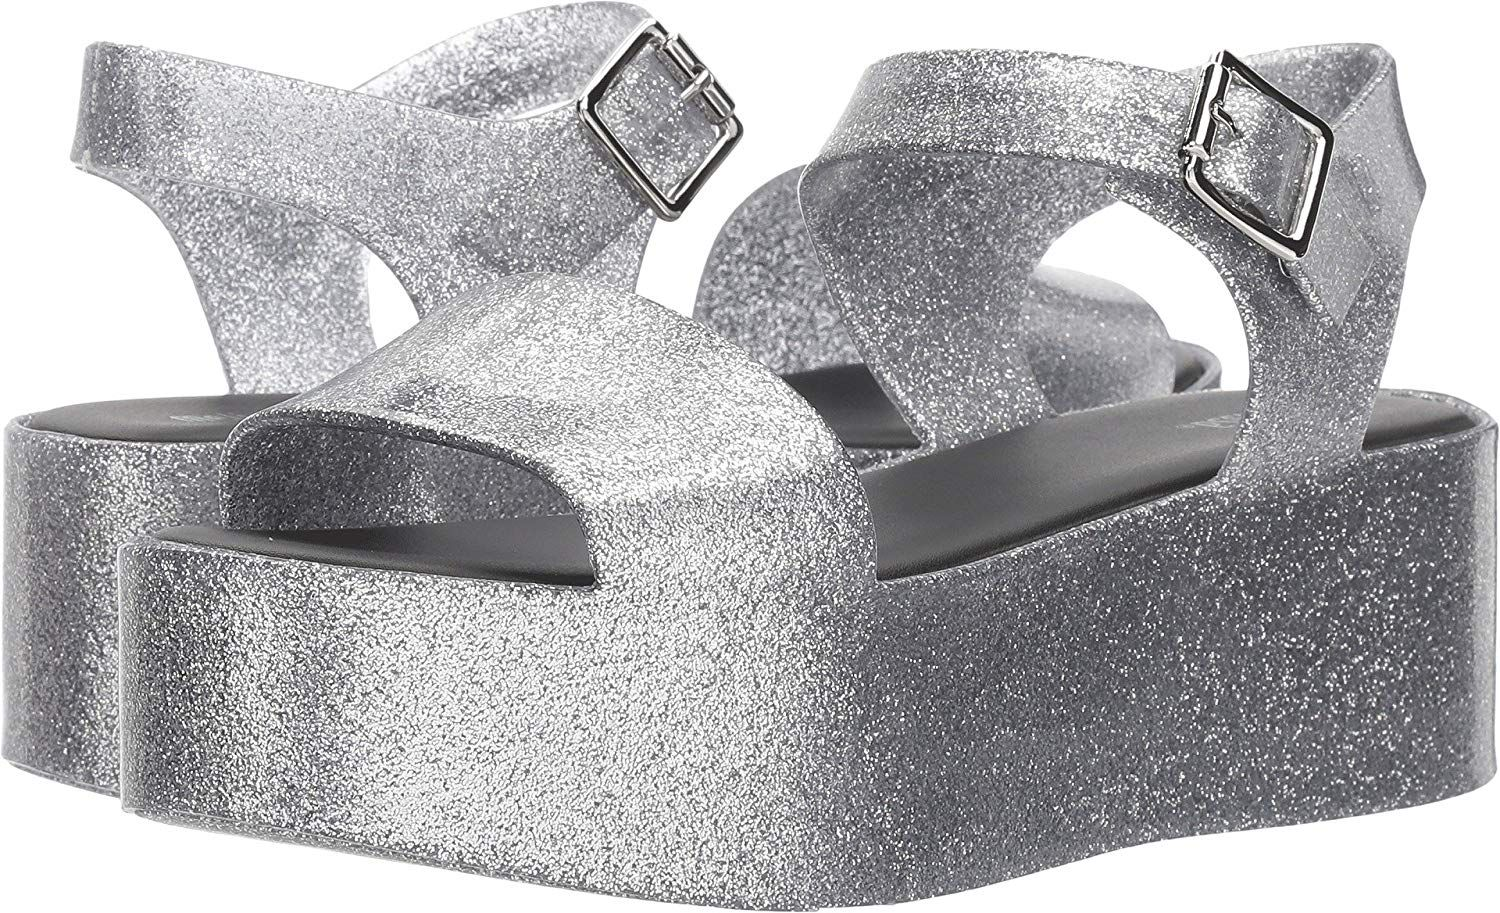 4361c9ba93 Melissa Women's Mar Flatforms. Chunky Melissa platform sandals made from  glitter-covered PVC. Buckle ankle strap. Rubber sole.. Women's Shoes,Sandals  ...